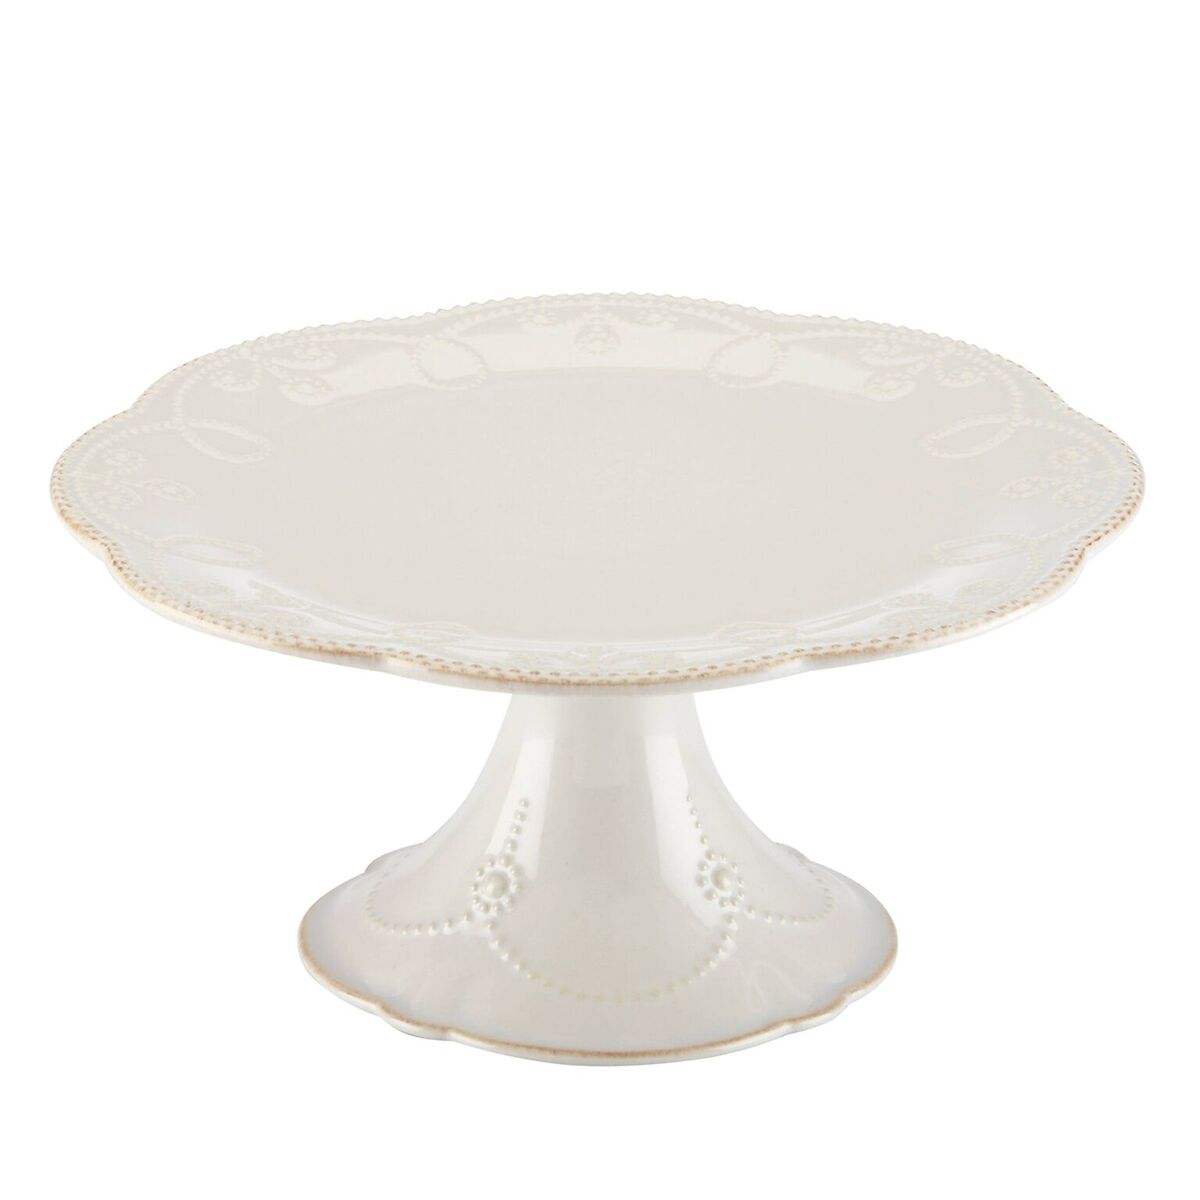 Lenox French Perle White Pedestal 10.5 Inch Cake Plate